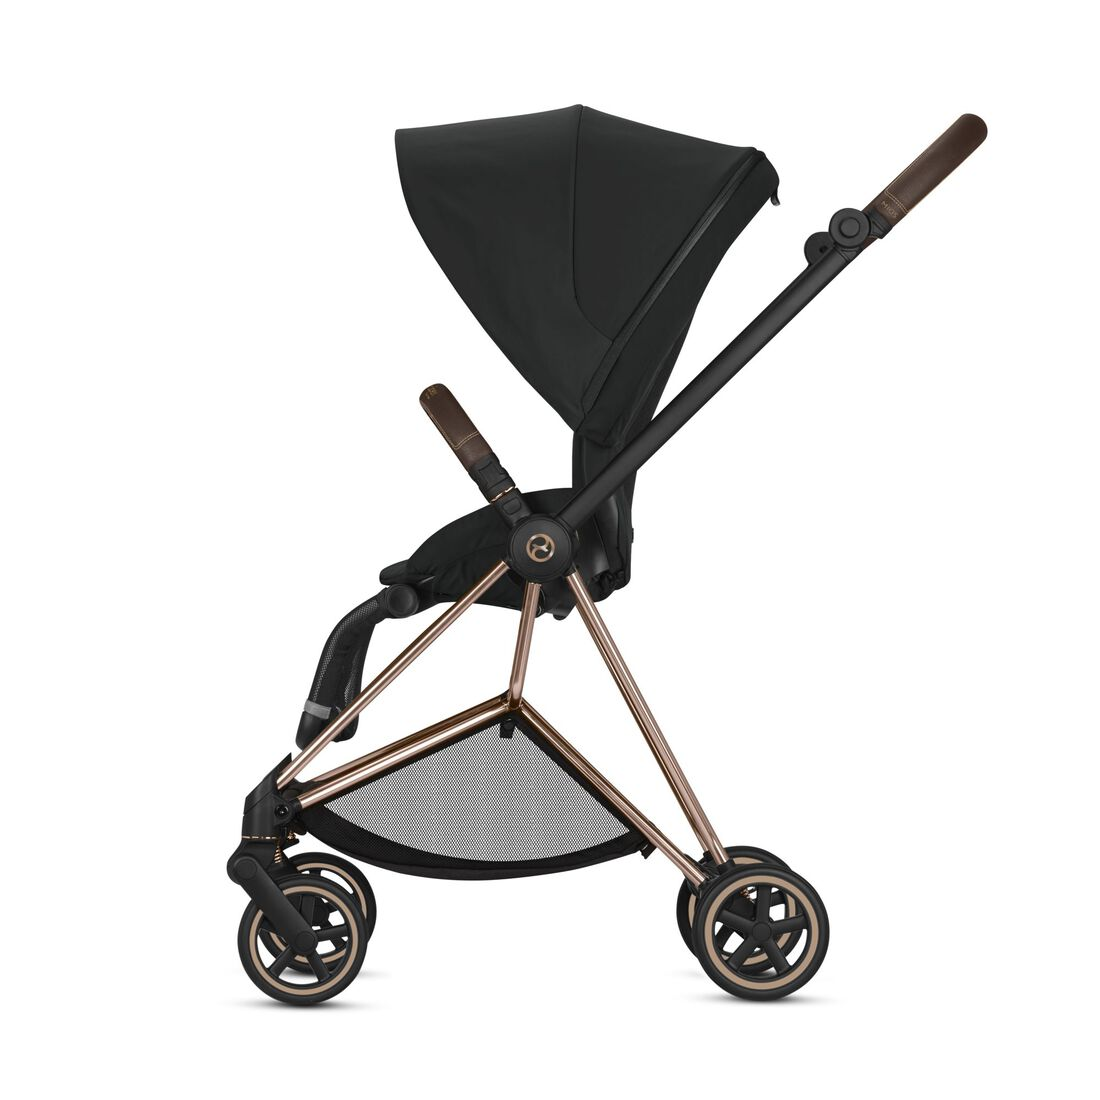 CYBEX MIOS Stroller - ONE-HAND RECLINE FUNCTION